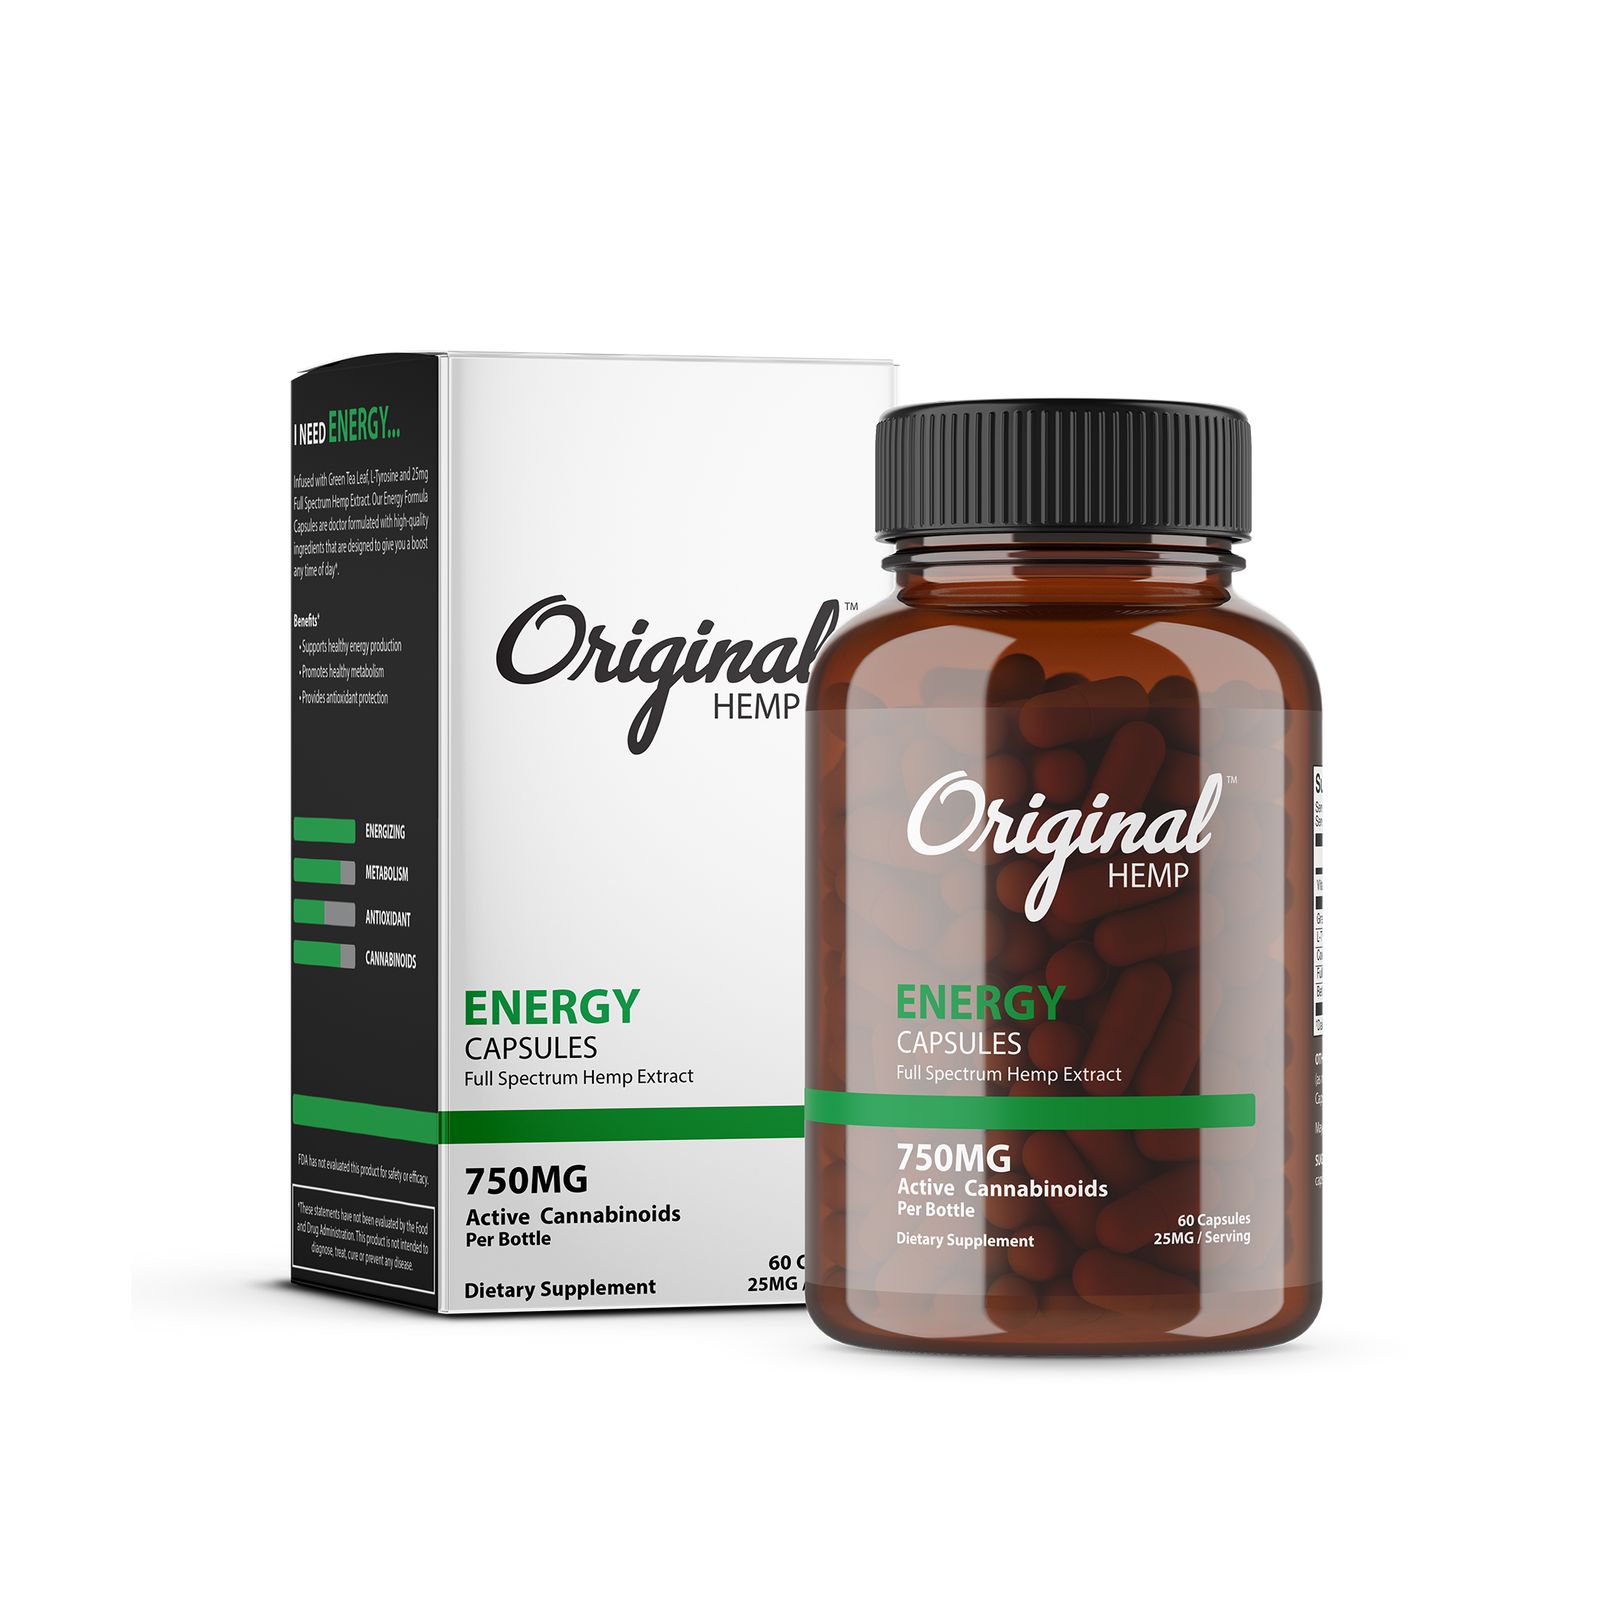 Original Hemp Energy Capsules - 750 mg